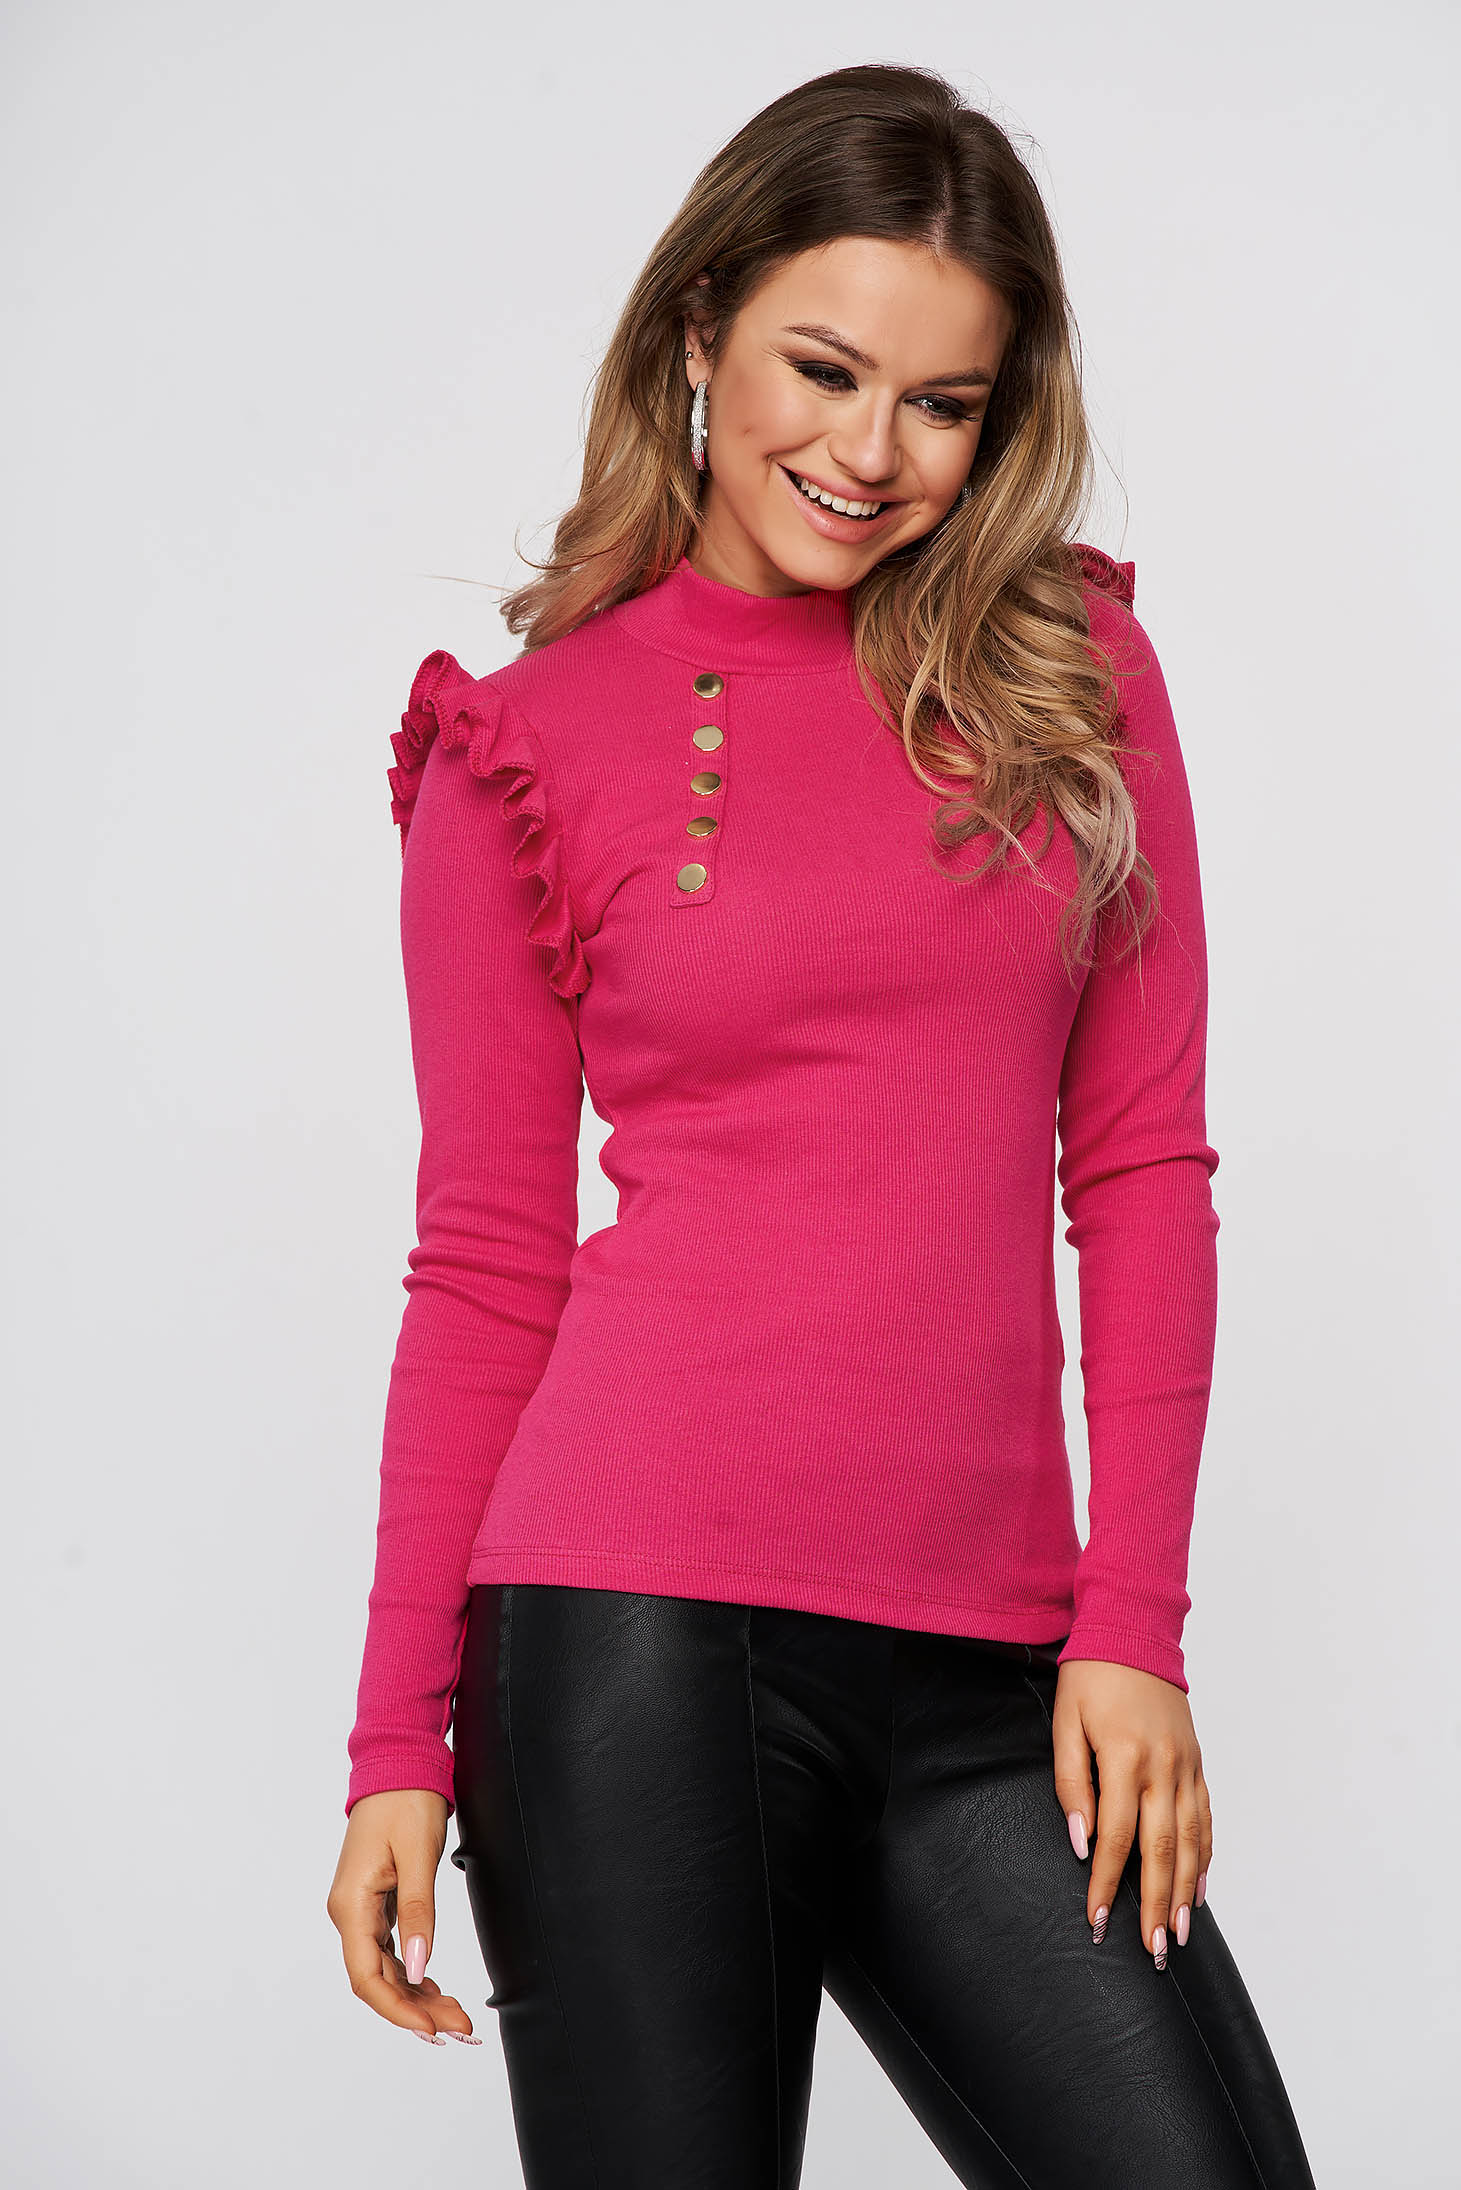 Women`s blouse cotton from striped fabric tented pink with ruffle details with turtle neck